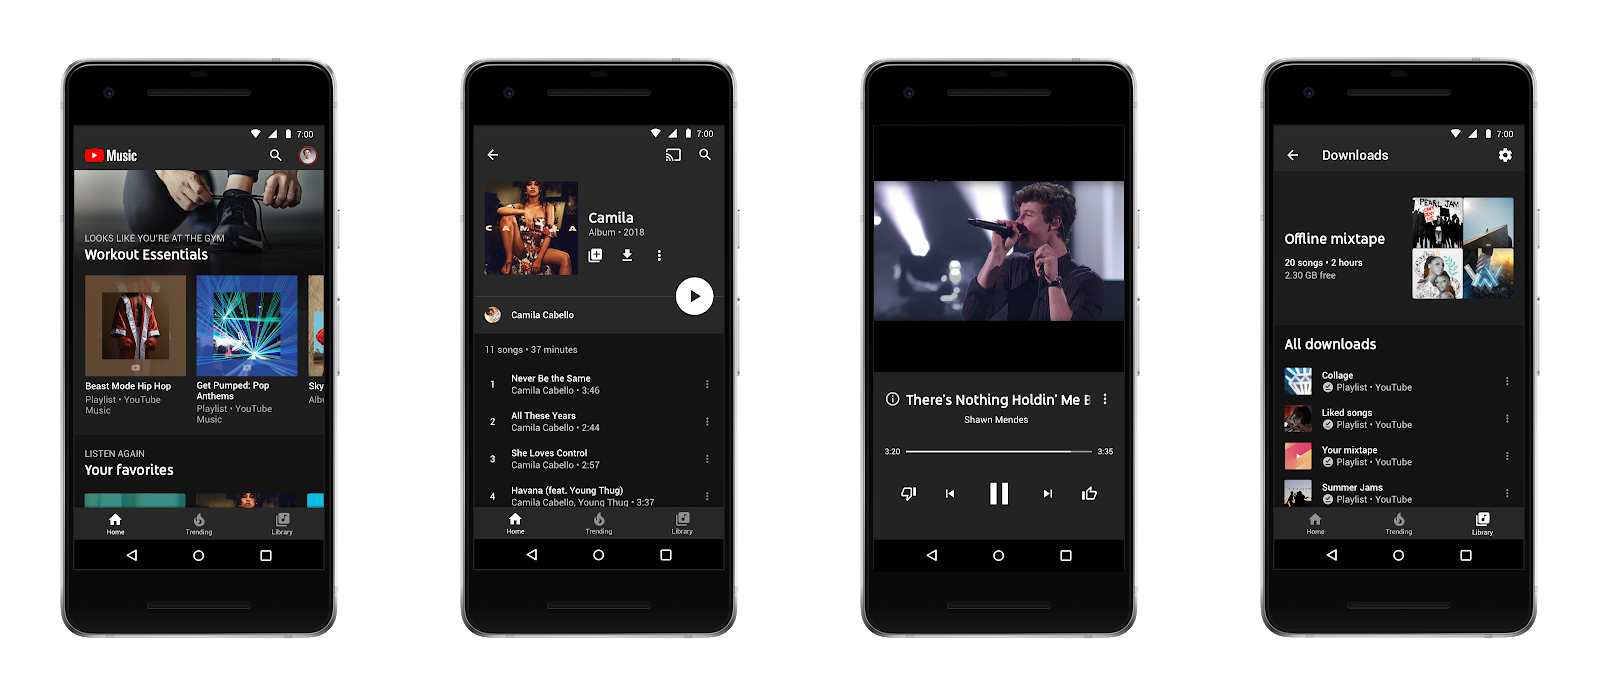 YouTube Music will eventually pick up all of Google Play